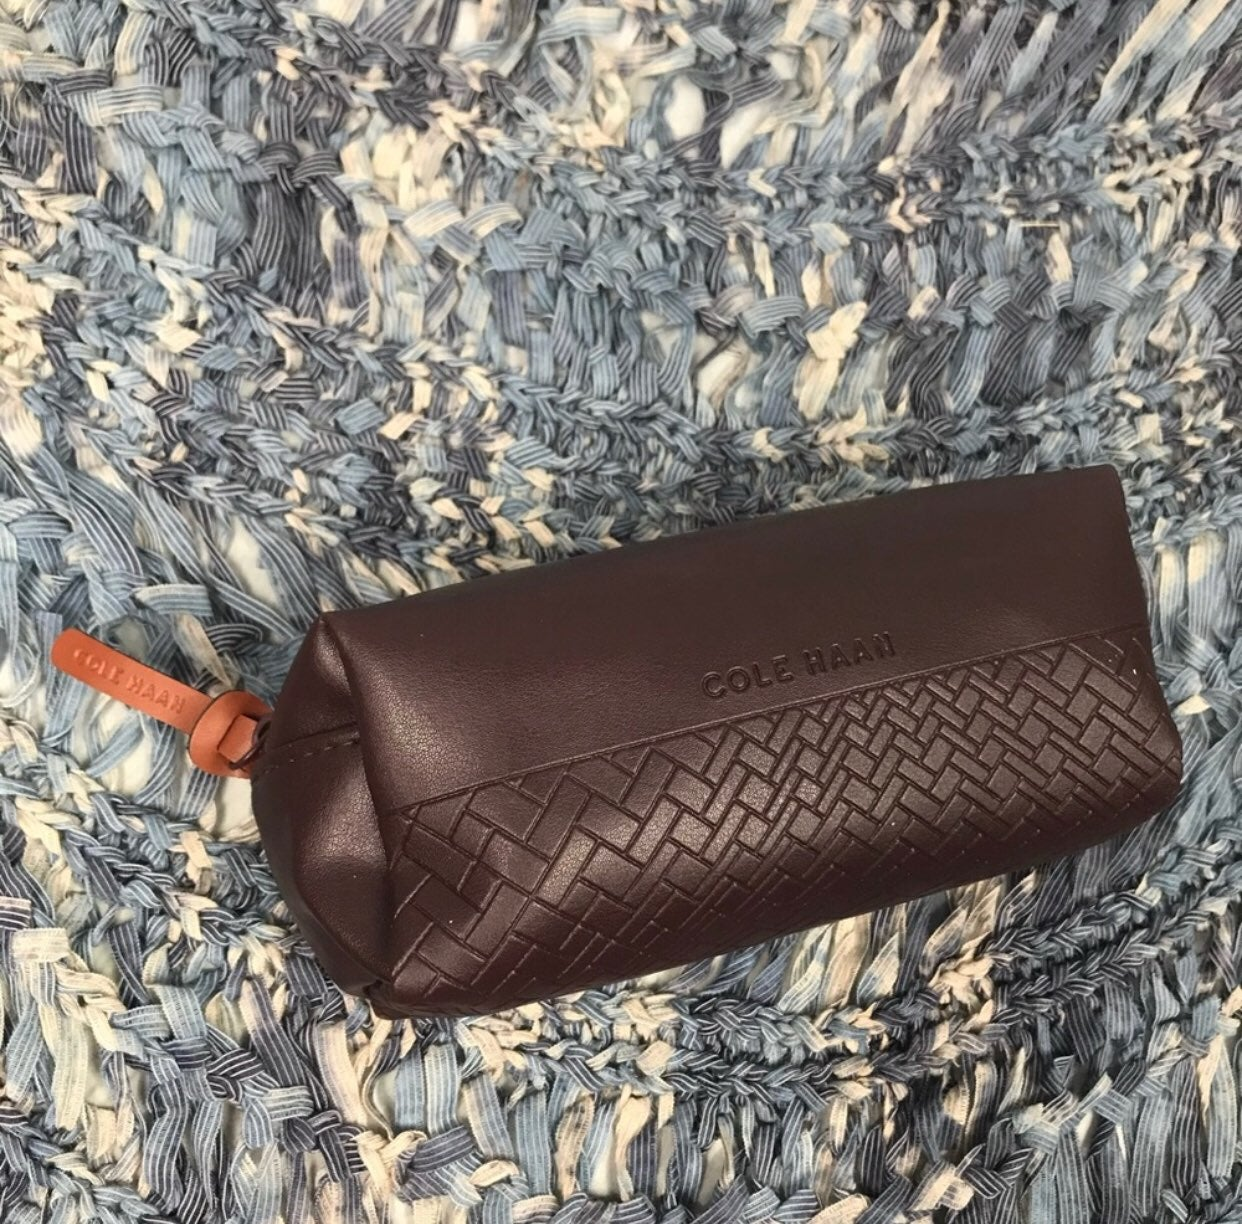 Cole Haan Small Toiletry Bag